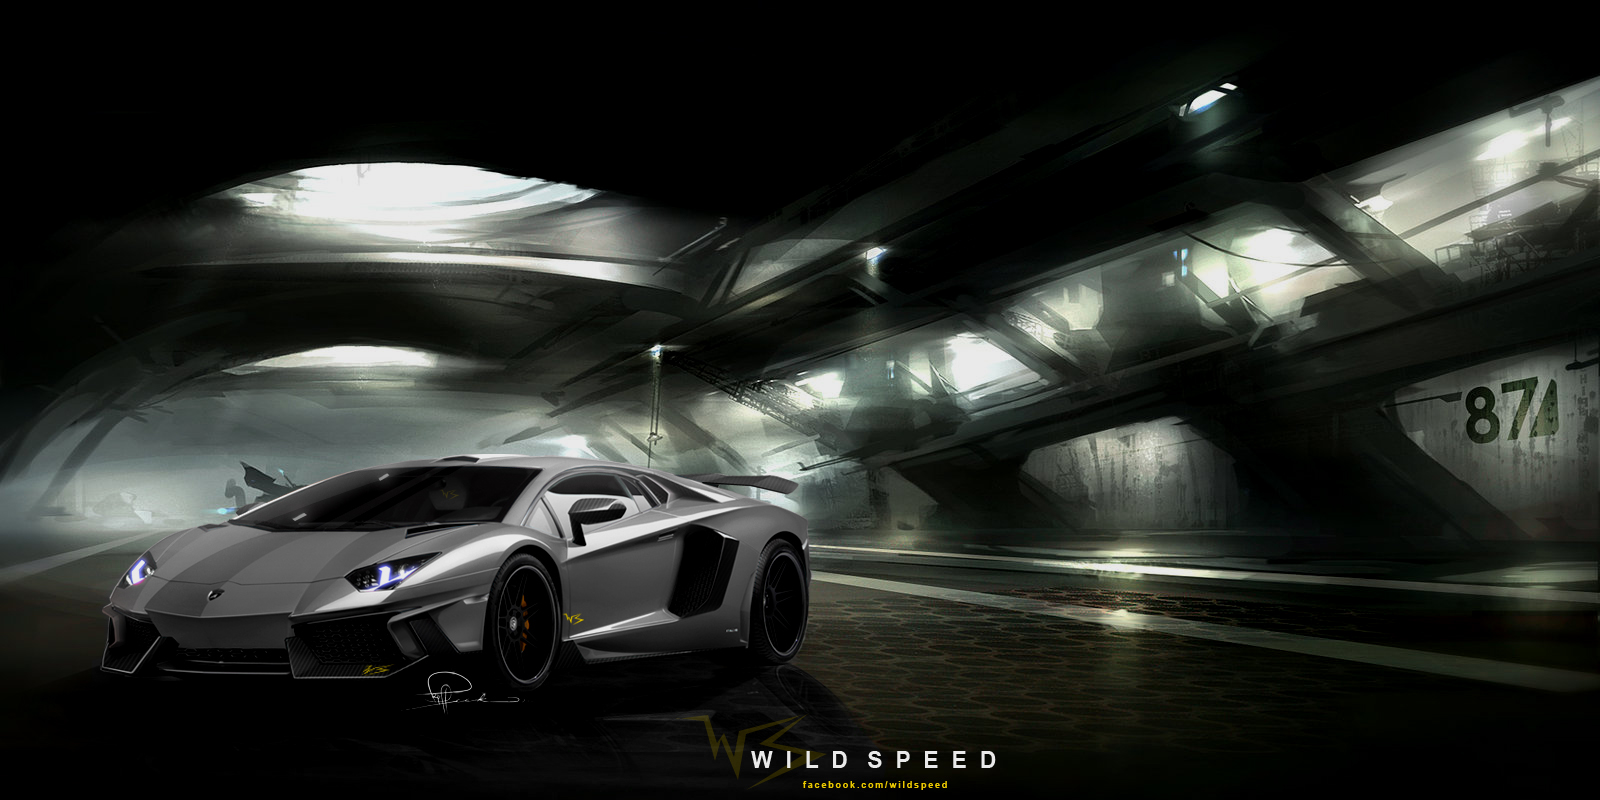 Lamborghini Aventador Wallpaper Widescreen PC